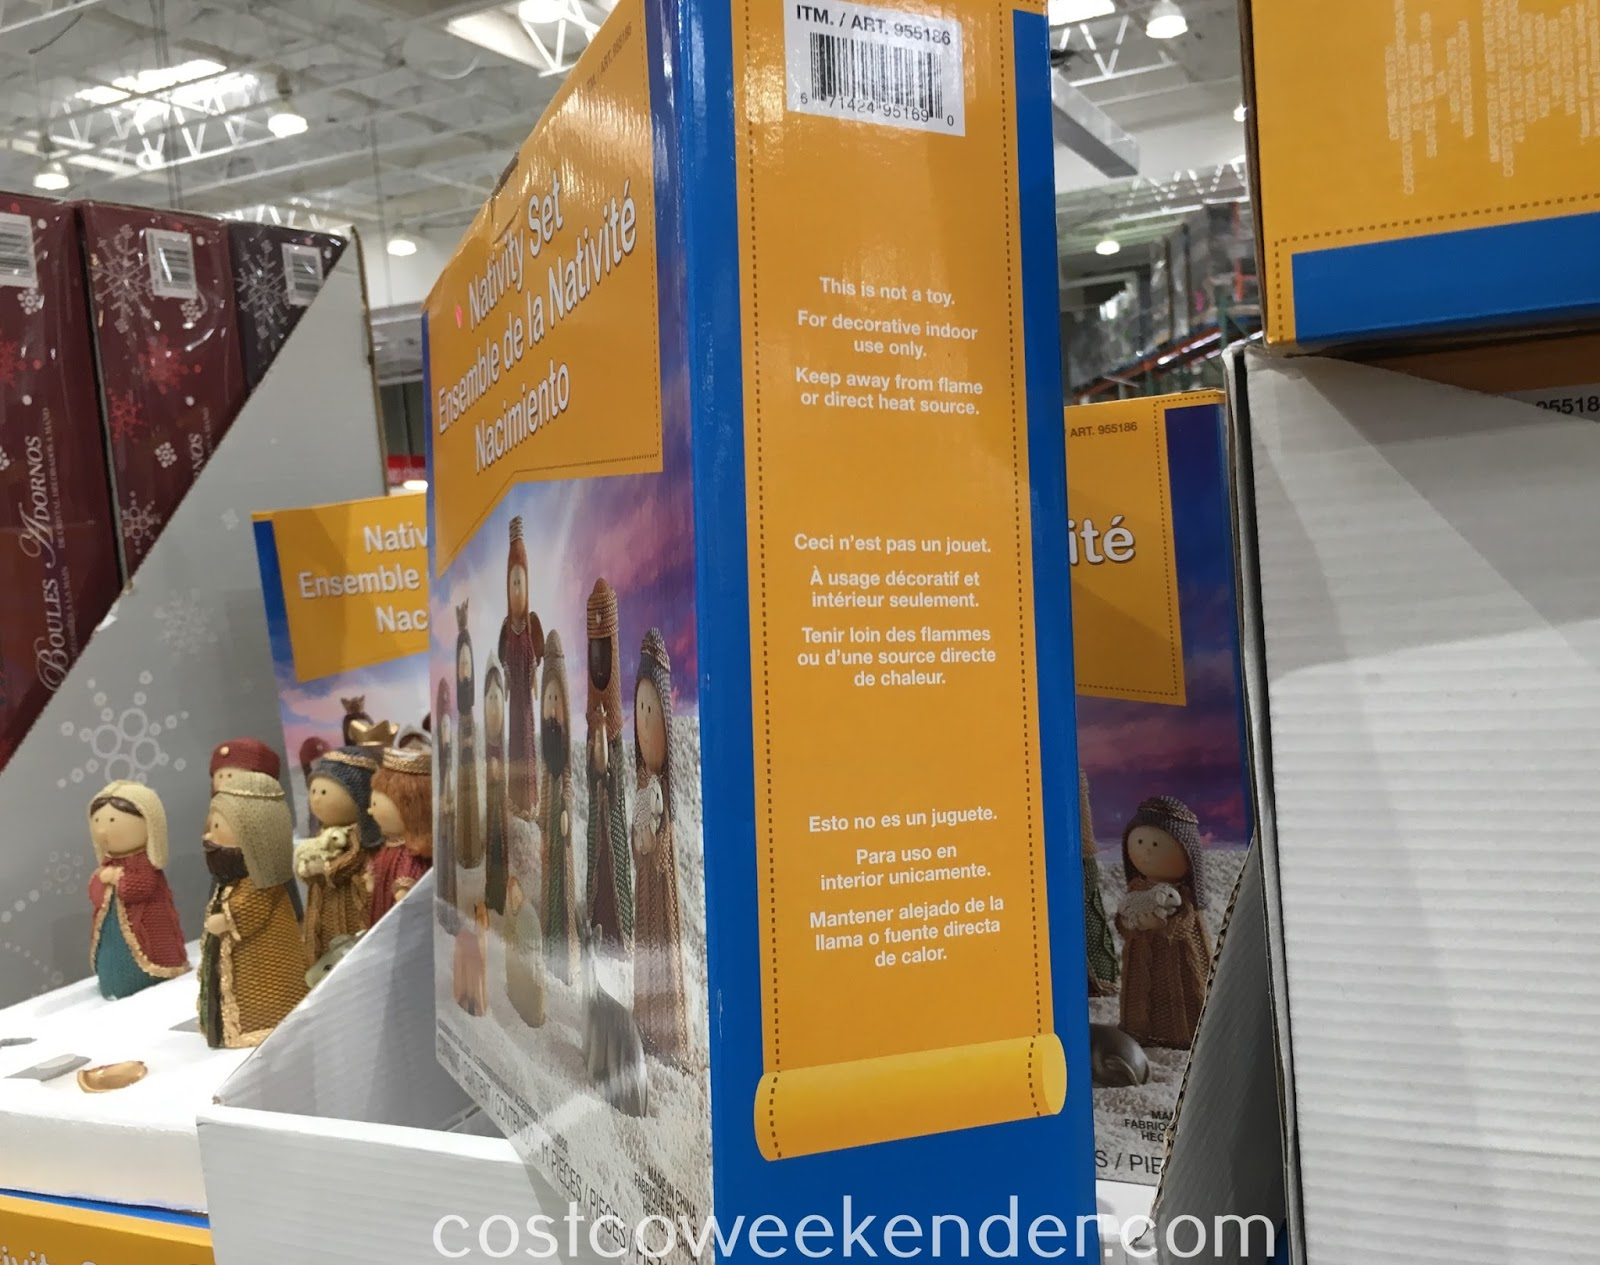 Costco 955186 - Nativity Set - great addition to your holiday decorations